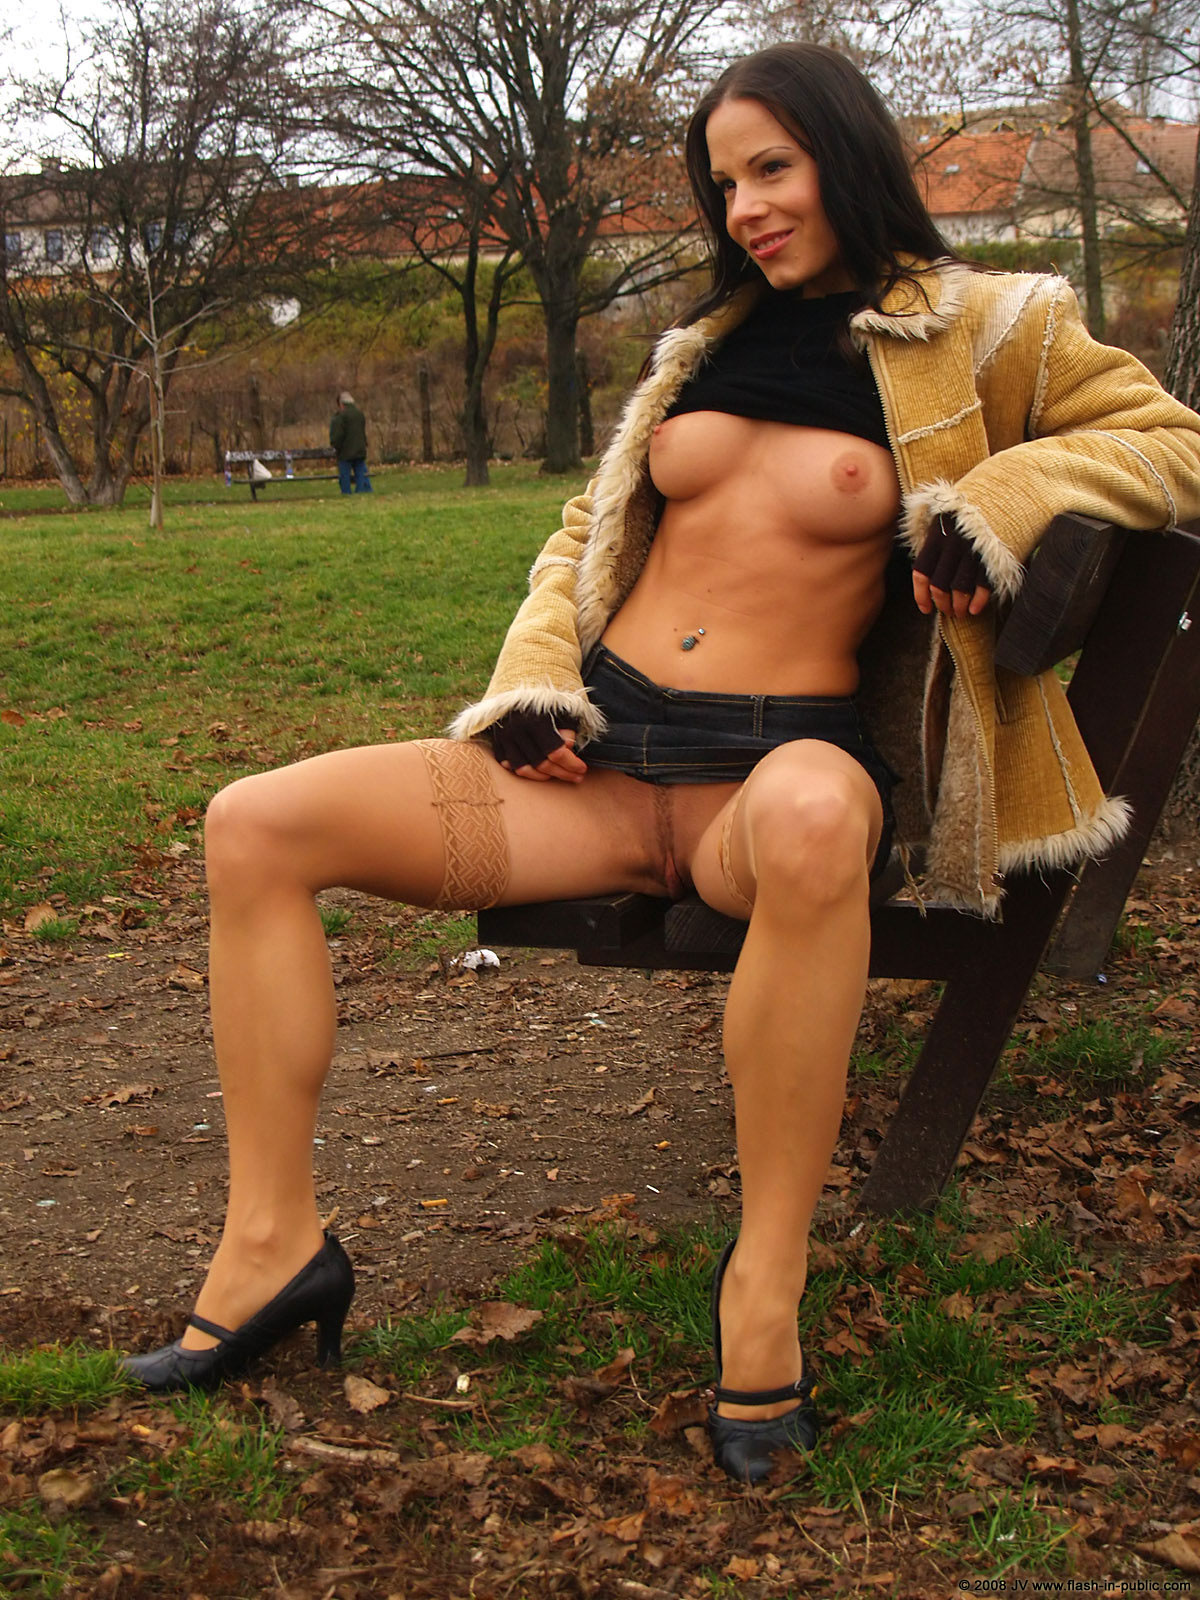 alexandra-g-bottomless-stockings-flash-in-public-33